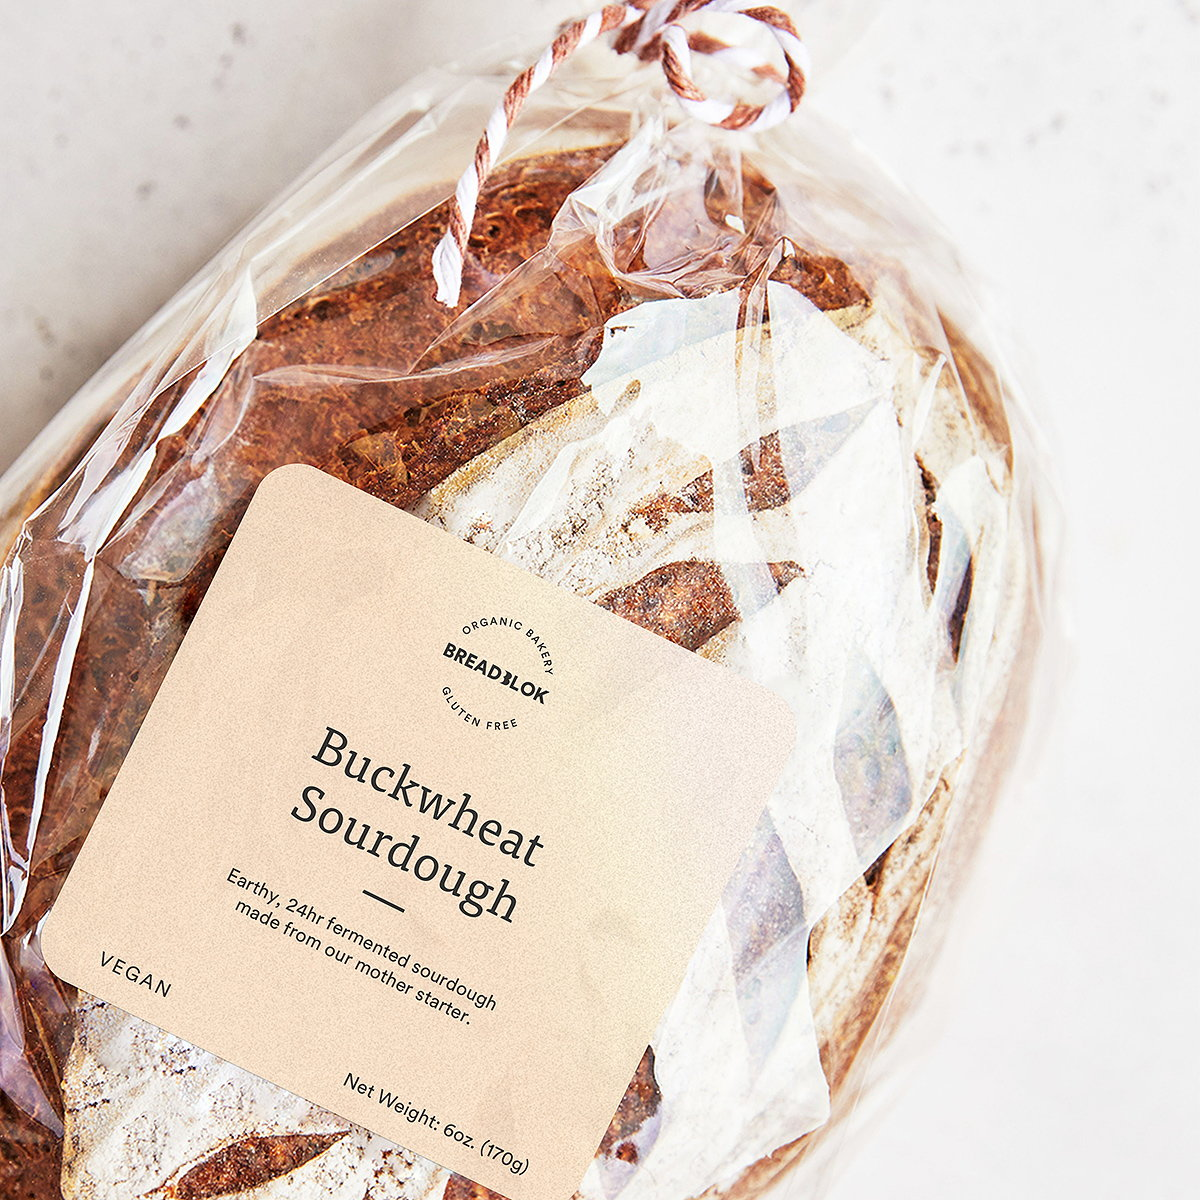 Charlie Smith Designs Visual Identity, Packaging and Website for Breadblok